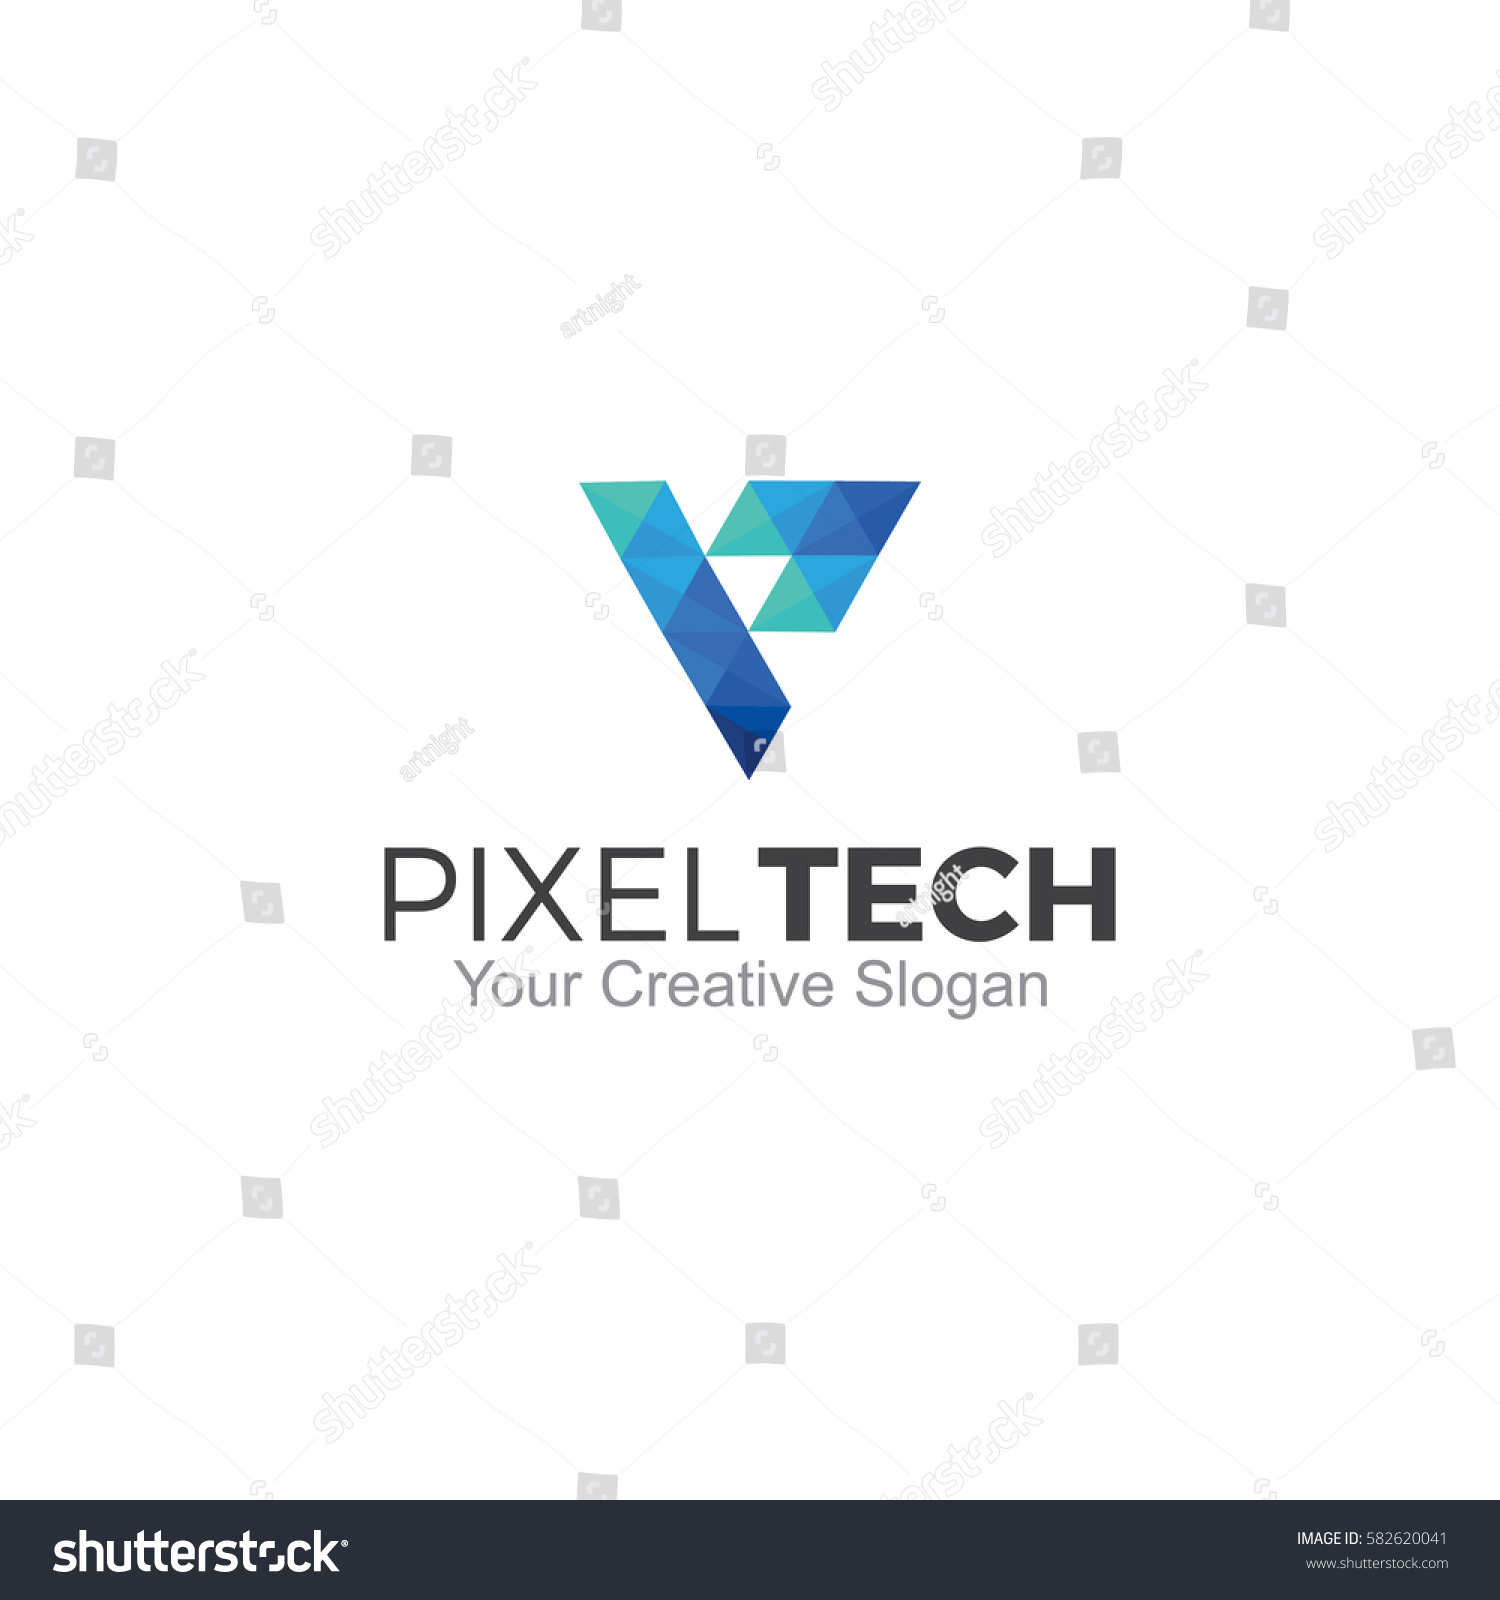 pixel tech logo vector illustration stock vector royalty free